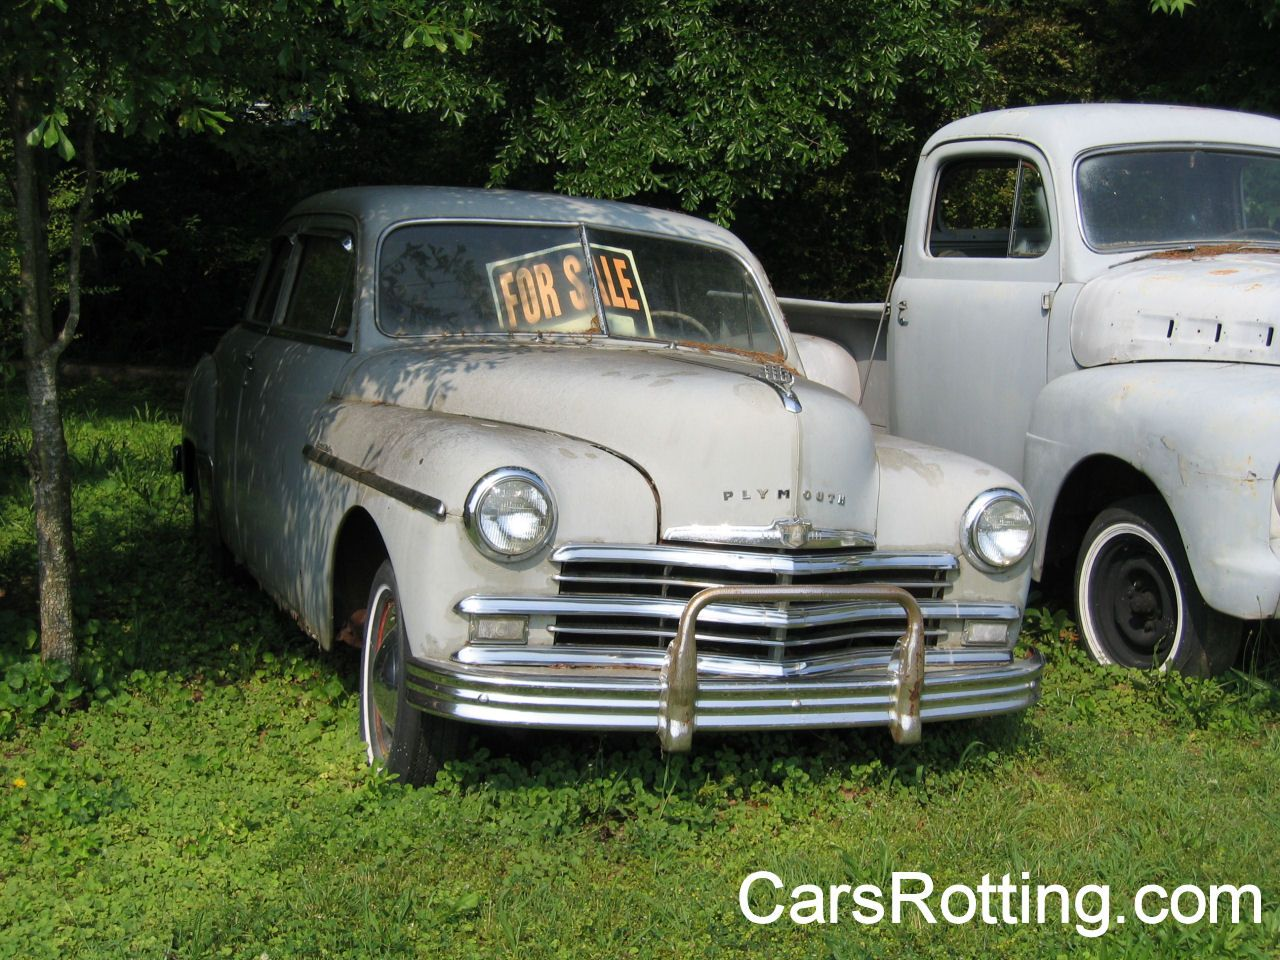 classic cars rotting    Filed under Plymouth by Joe .